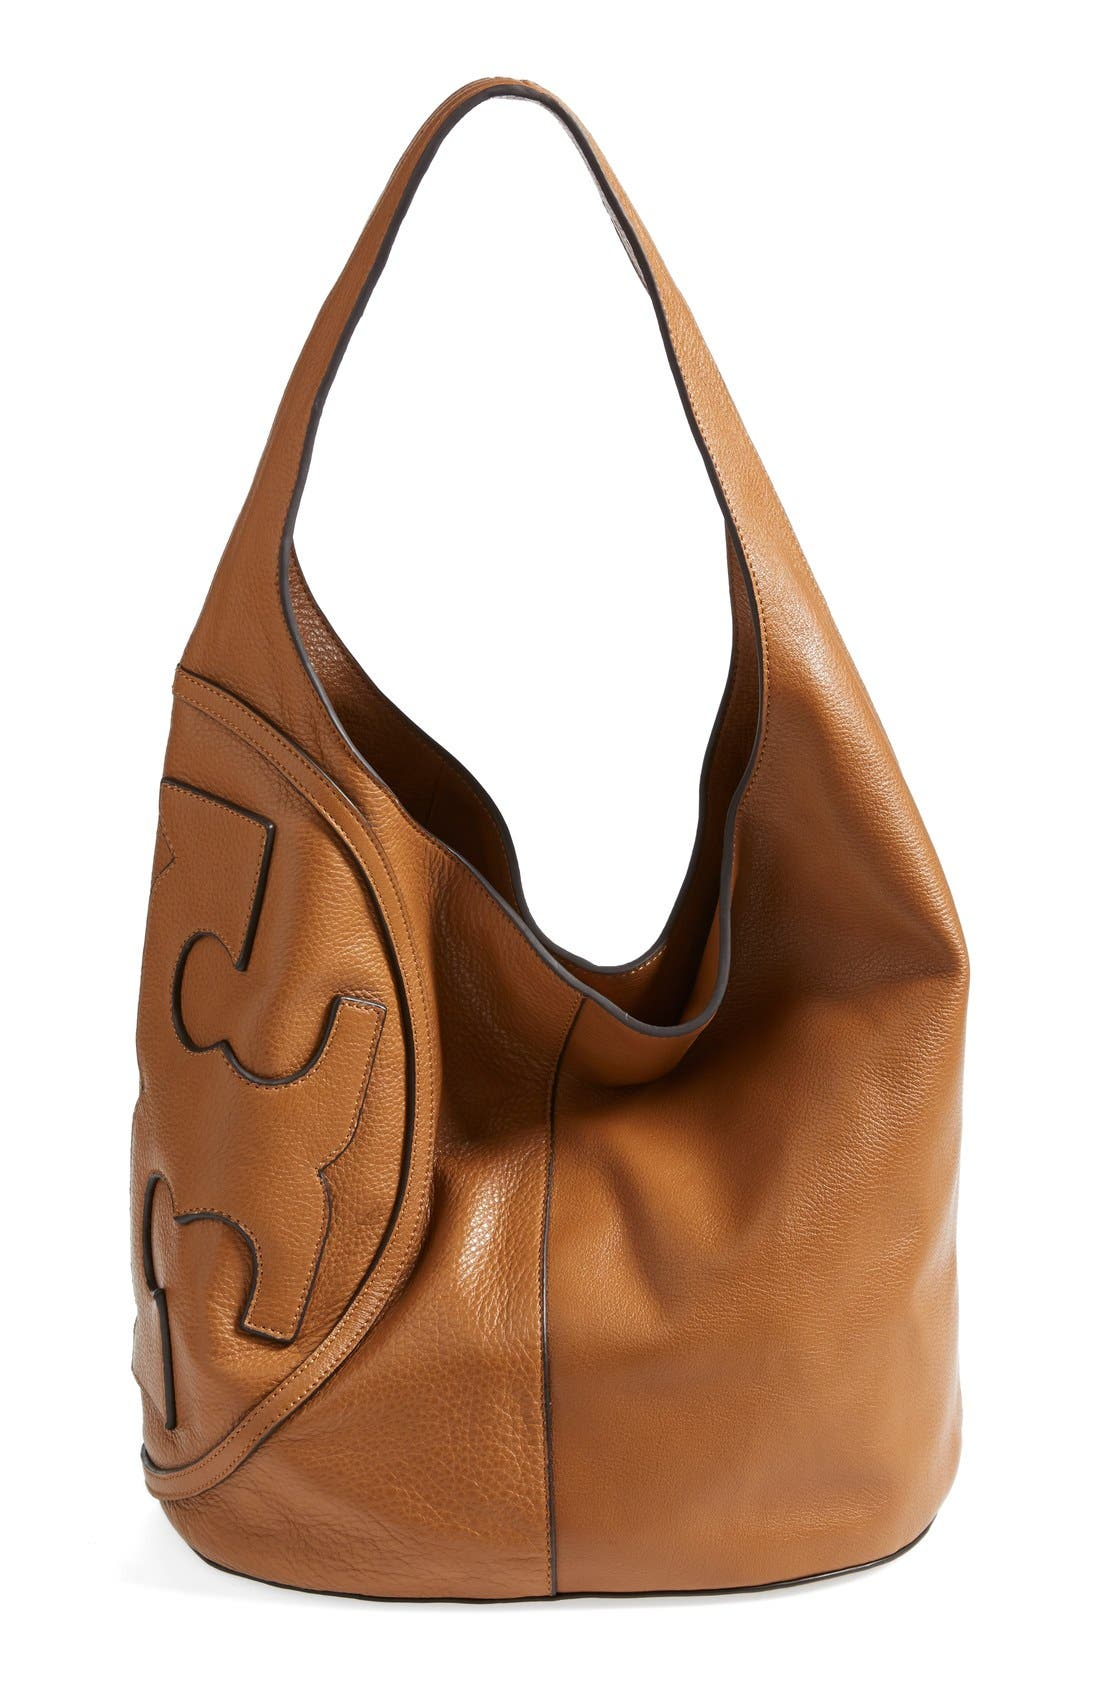 Main Image - Tory Burch 'All T' Logo Leather Hobo